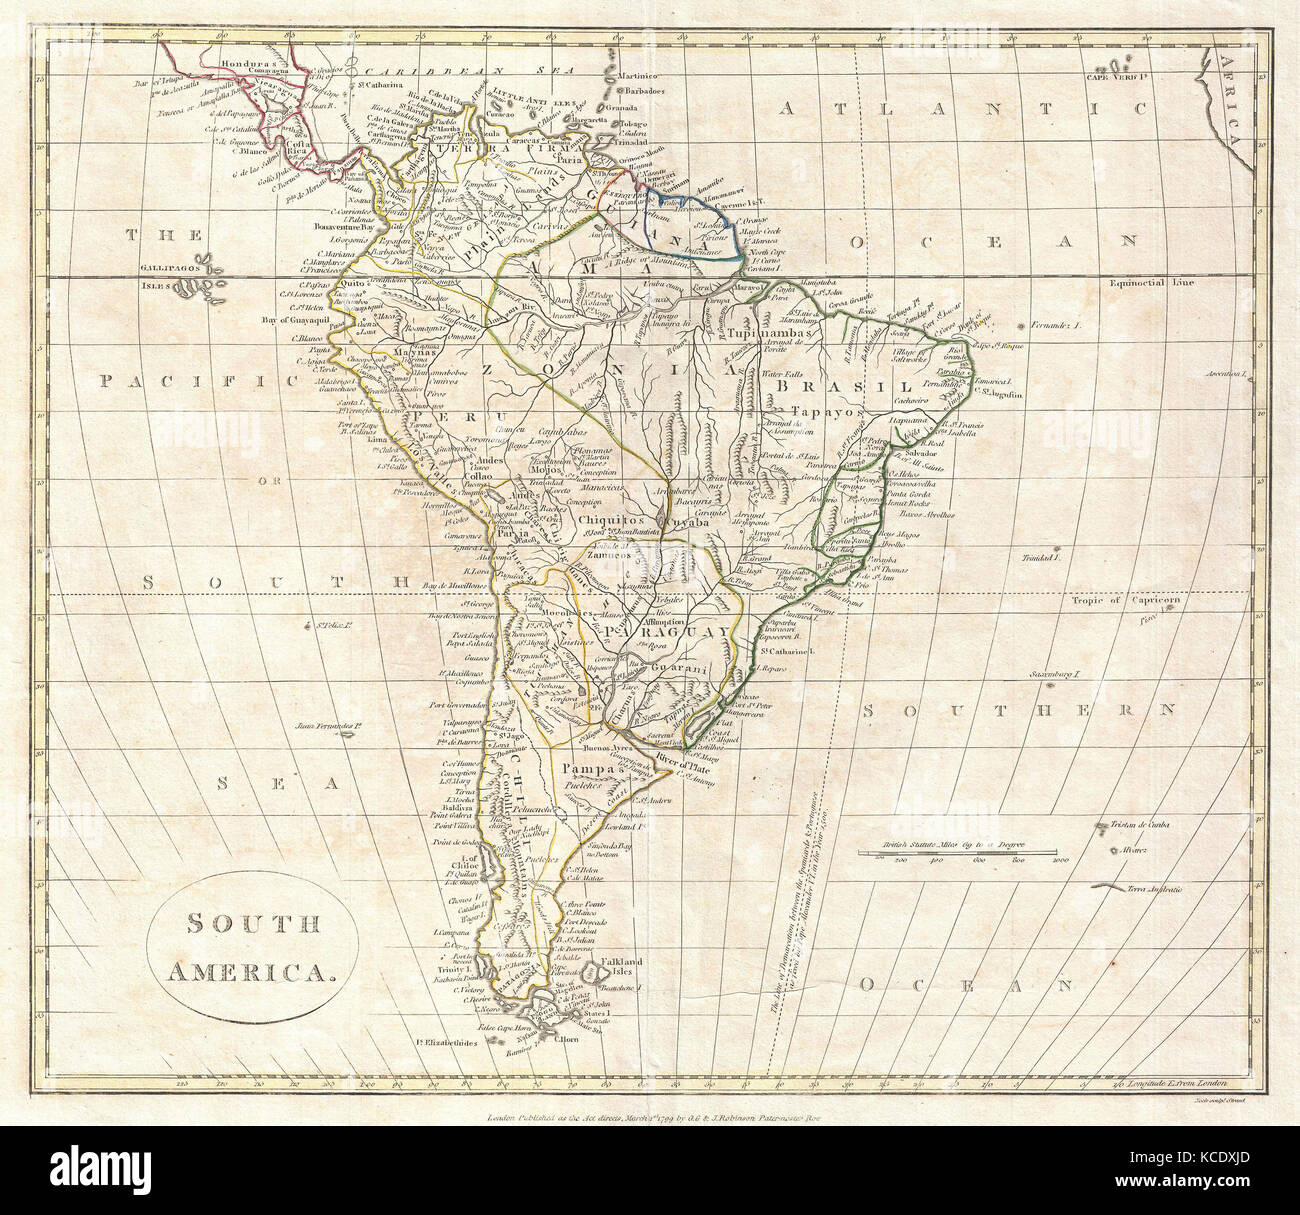 Map Of South America 2017.1799 Clement Cruttwell Map Of South America Stock Photo 162575461